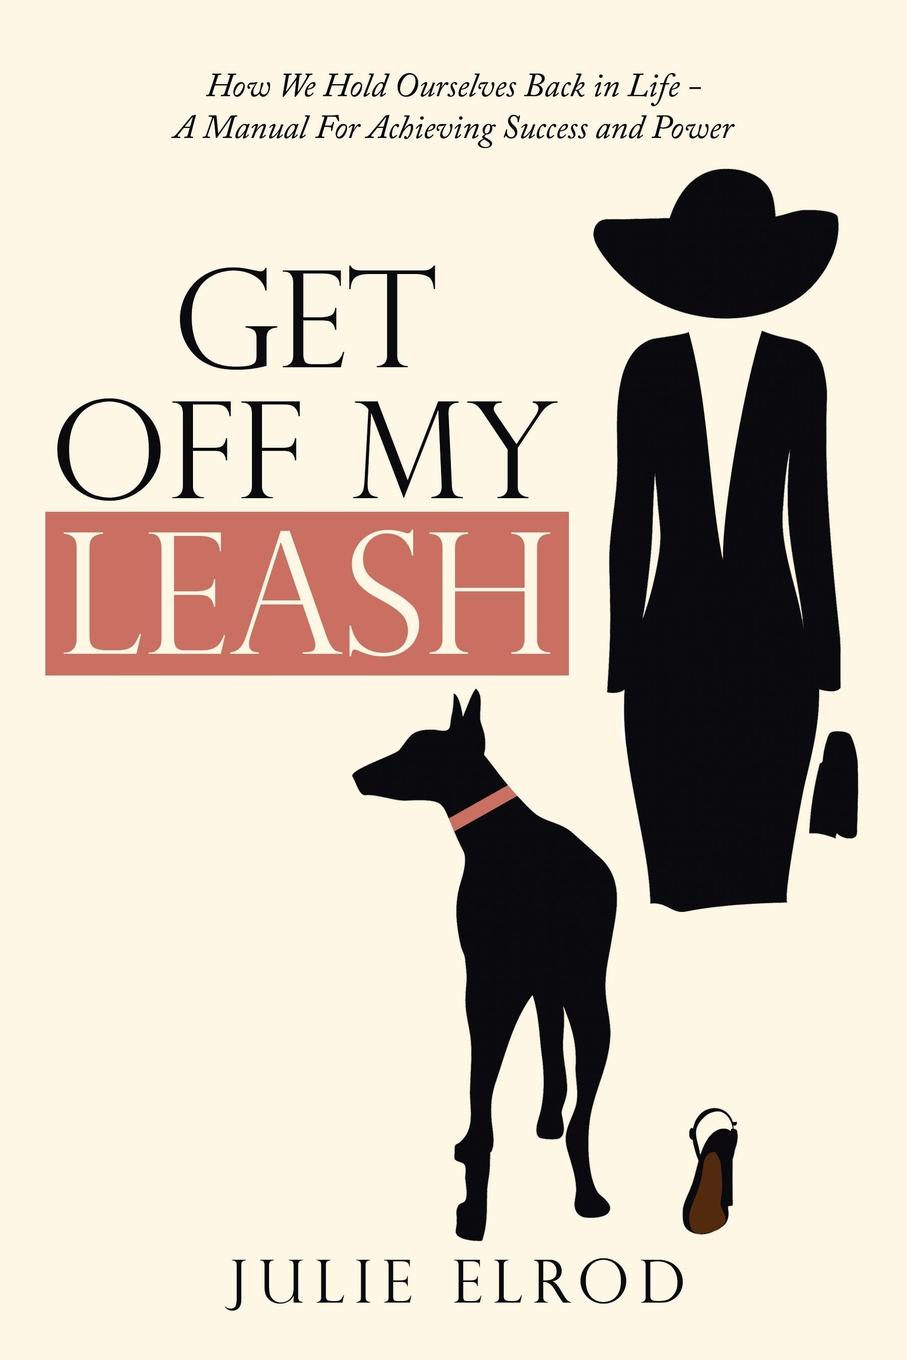 лучшая цена Julie Elrod Get off My Leash. How We Hold Ourselves Back in Life-A Manual for Achieving Success and Power